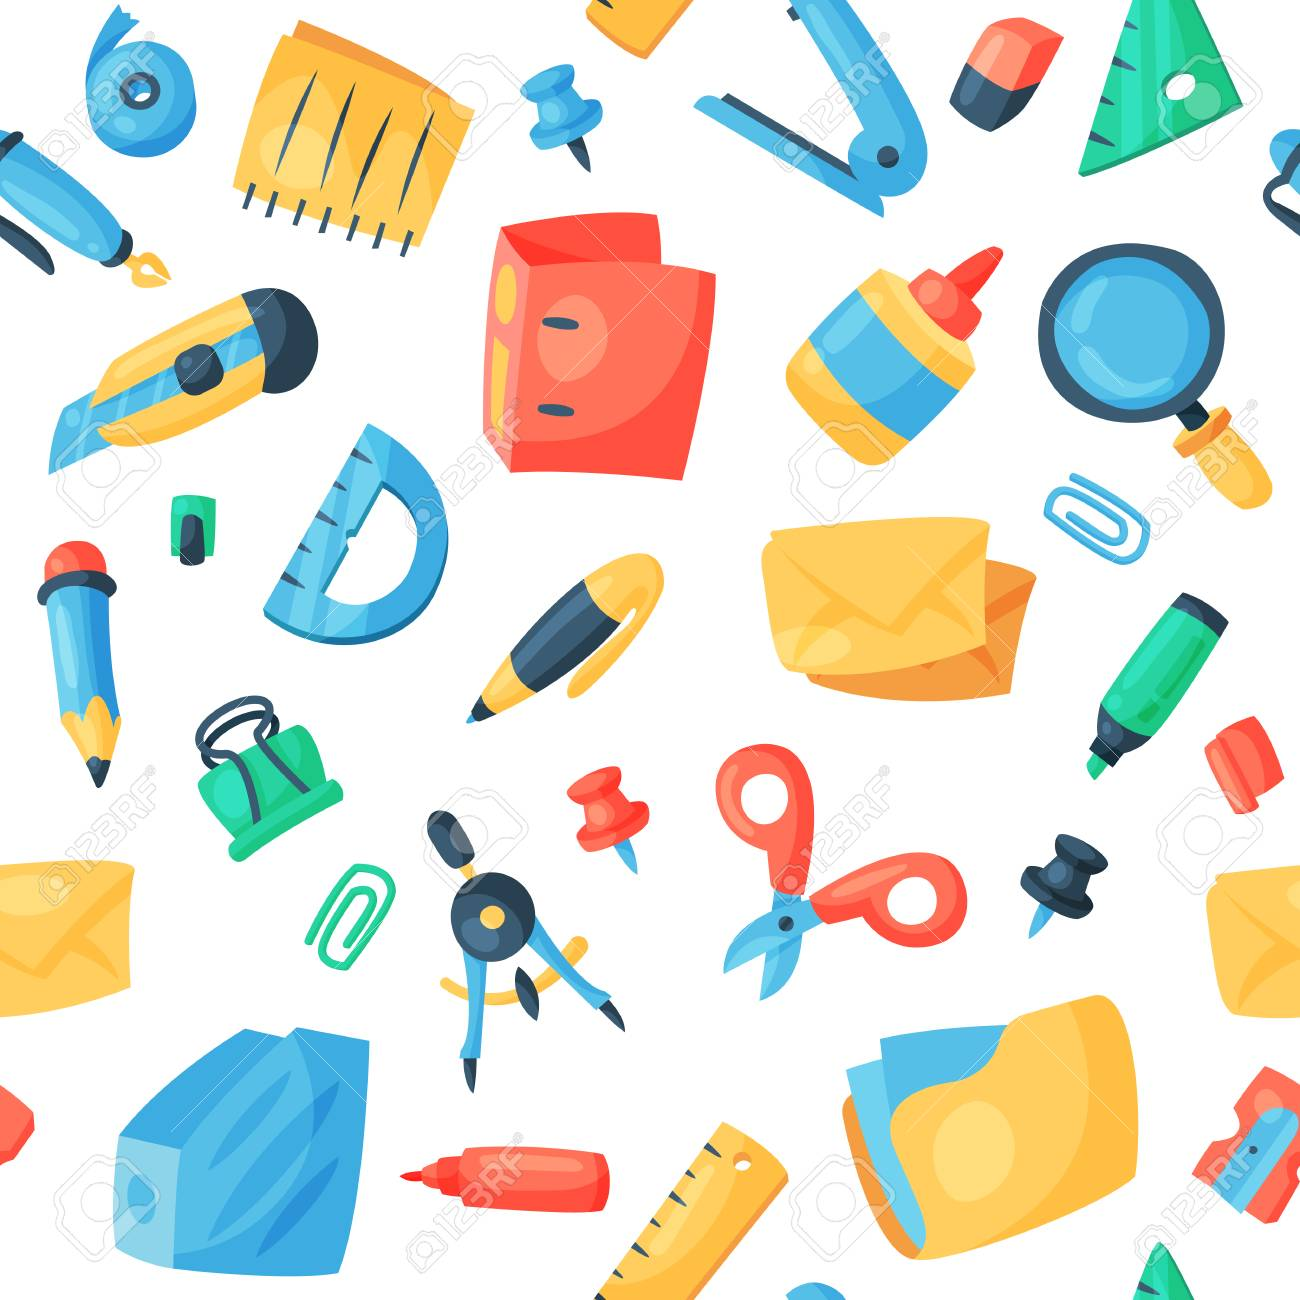 Stationery icons office supply vectorschool tools and accessories set education assortment pencil marker pen isolated on white background seamless pattern background. - 91089400